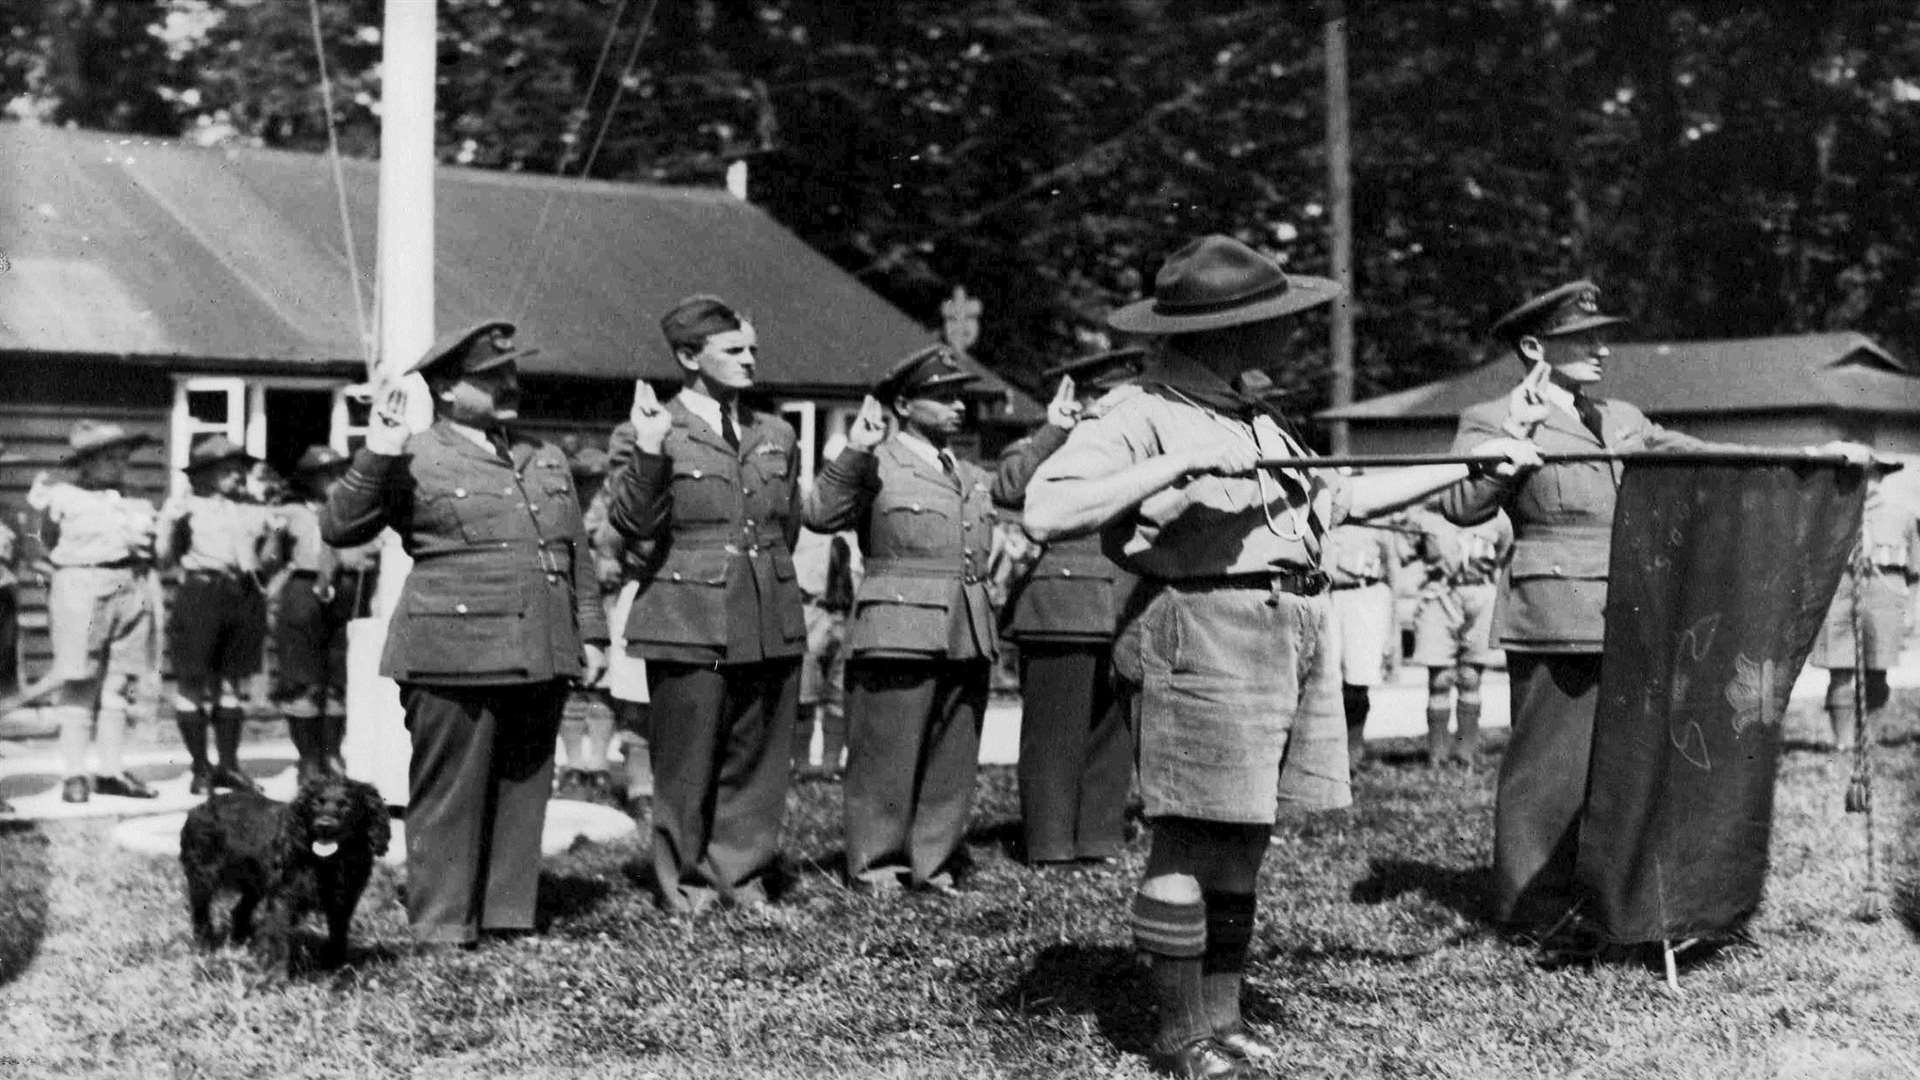 Guy Gibson being sworn in as a Venture Scout with the Tovil Scout Group, 1943. Courtesy of Tovil Scout Group